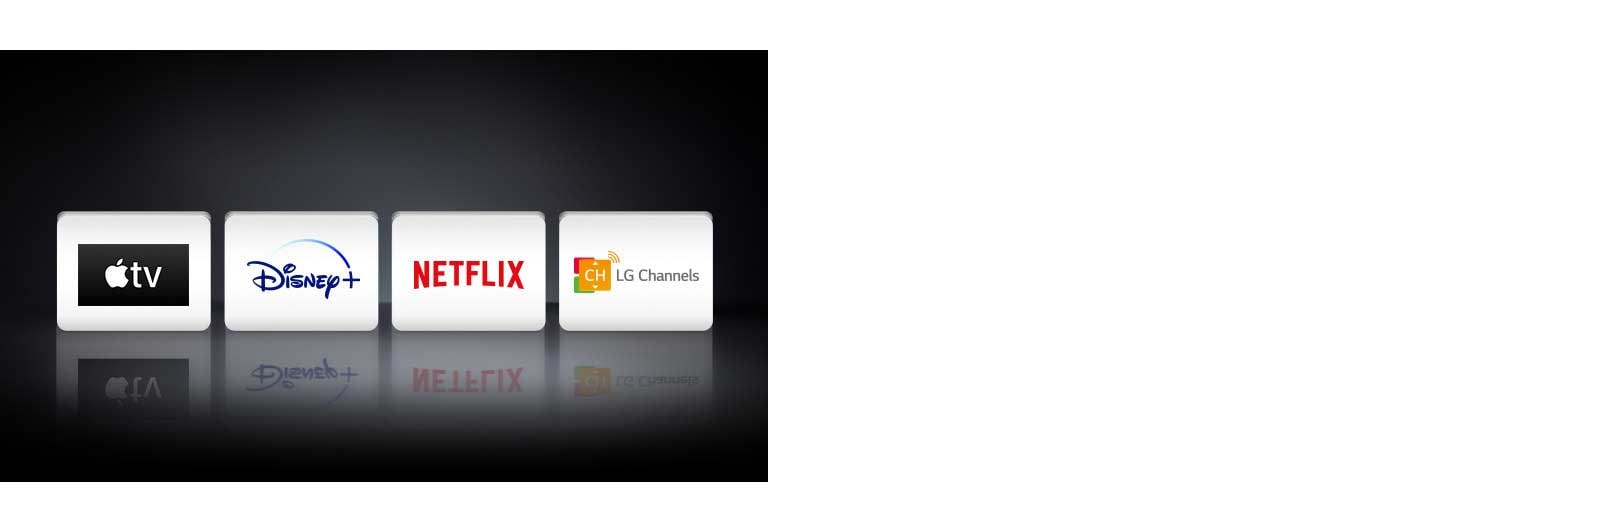 Four app logos shown from left to right: Apple TV, Disney+, Netflix and LG Channels.